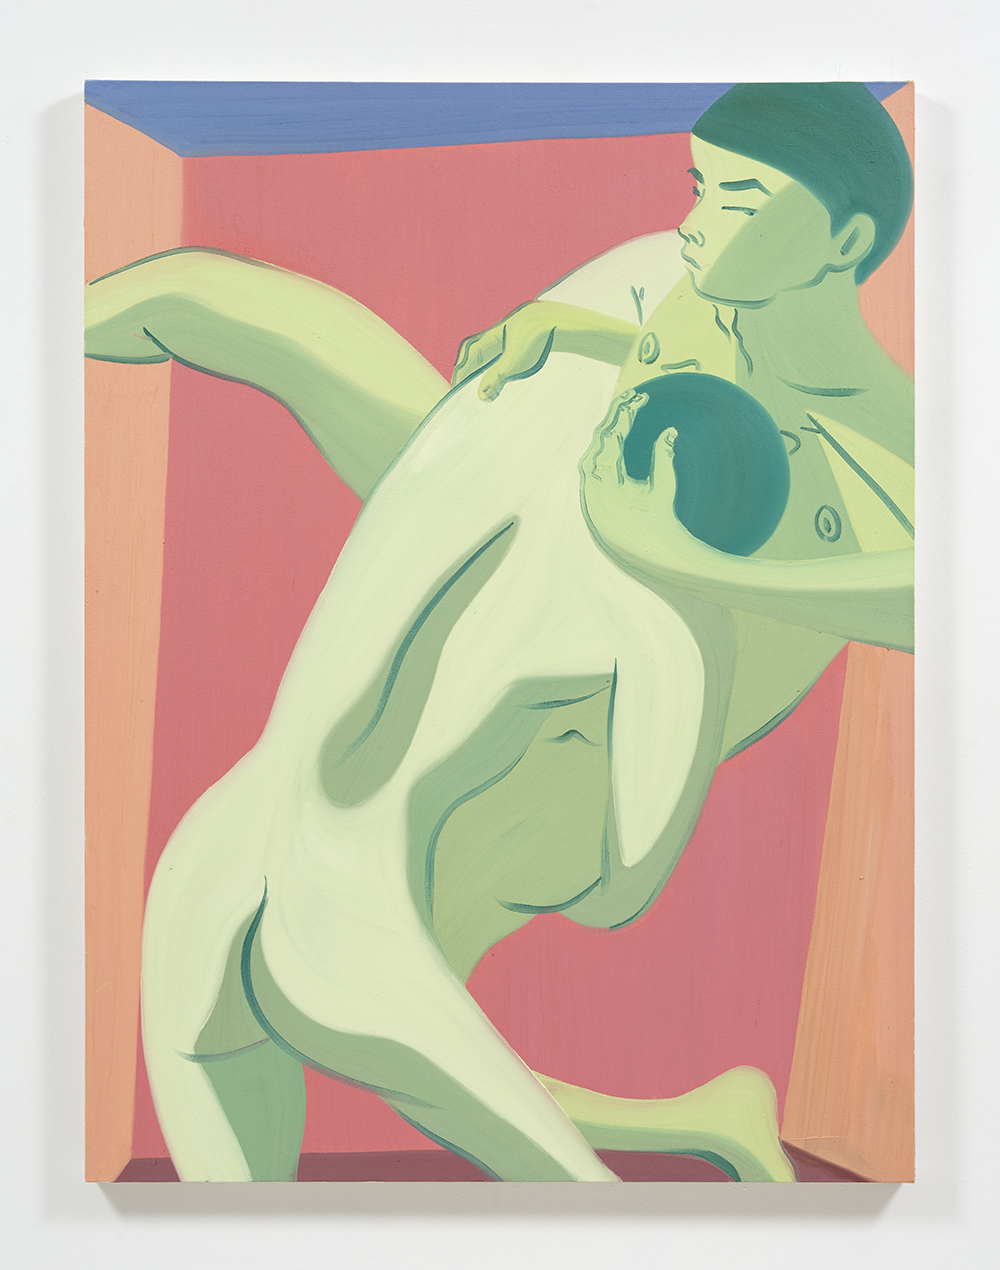 Mark Yang Hip Throw, 2019 Oil on canvas 60 x 45 inches (152.4 x 114.3 cm)